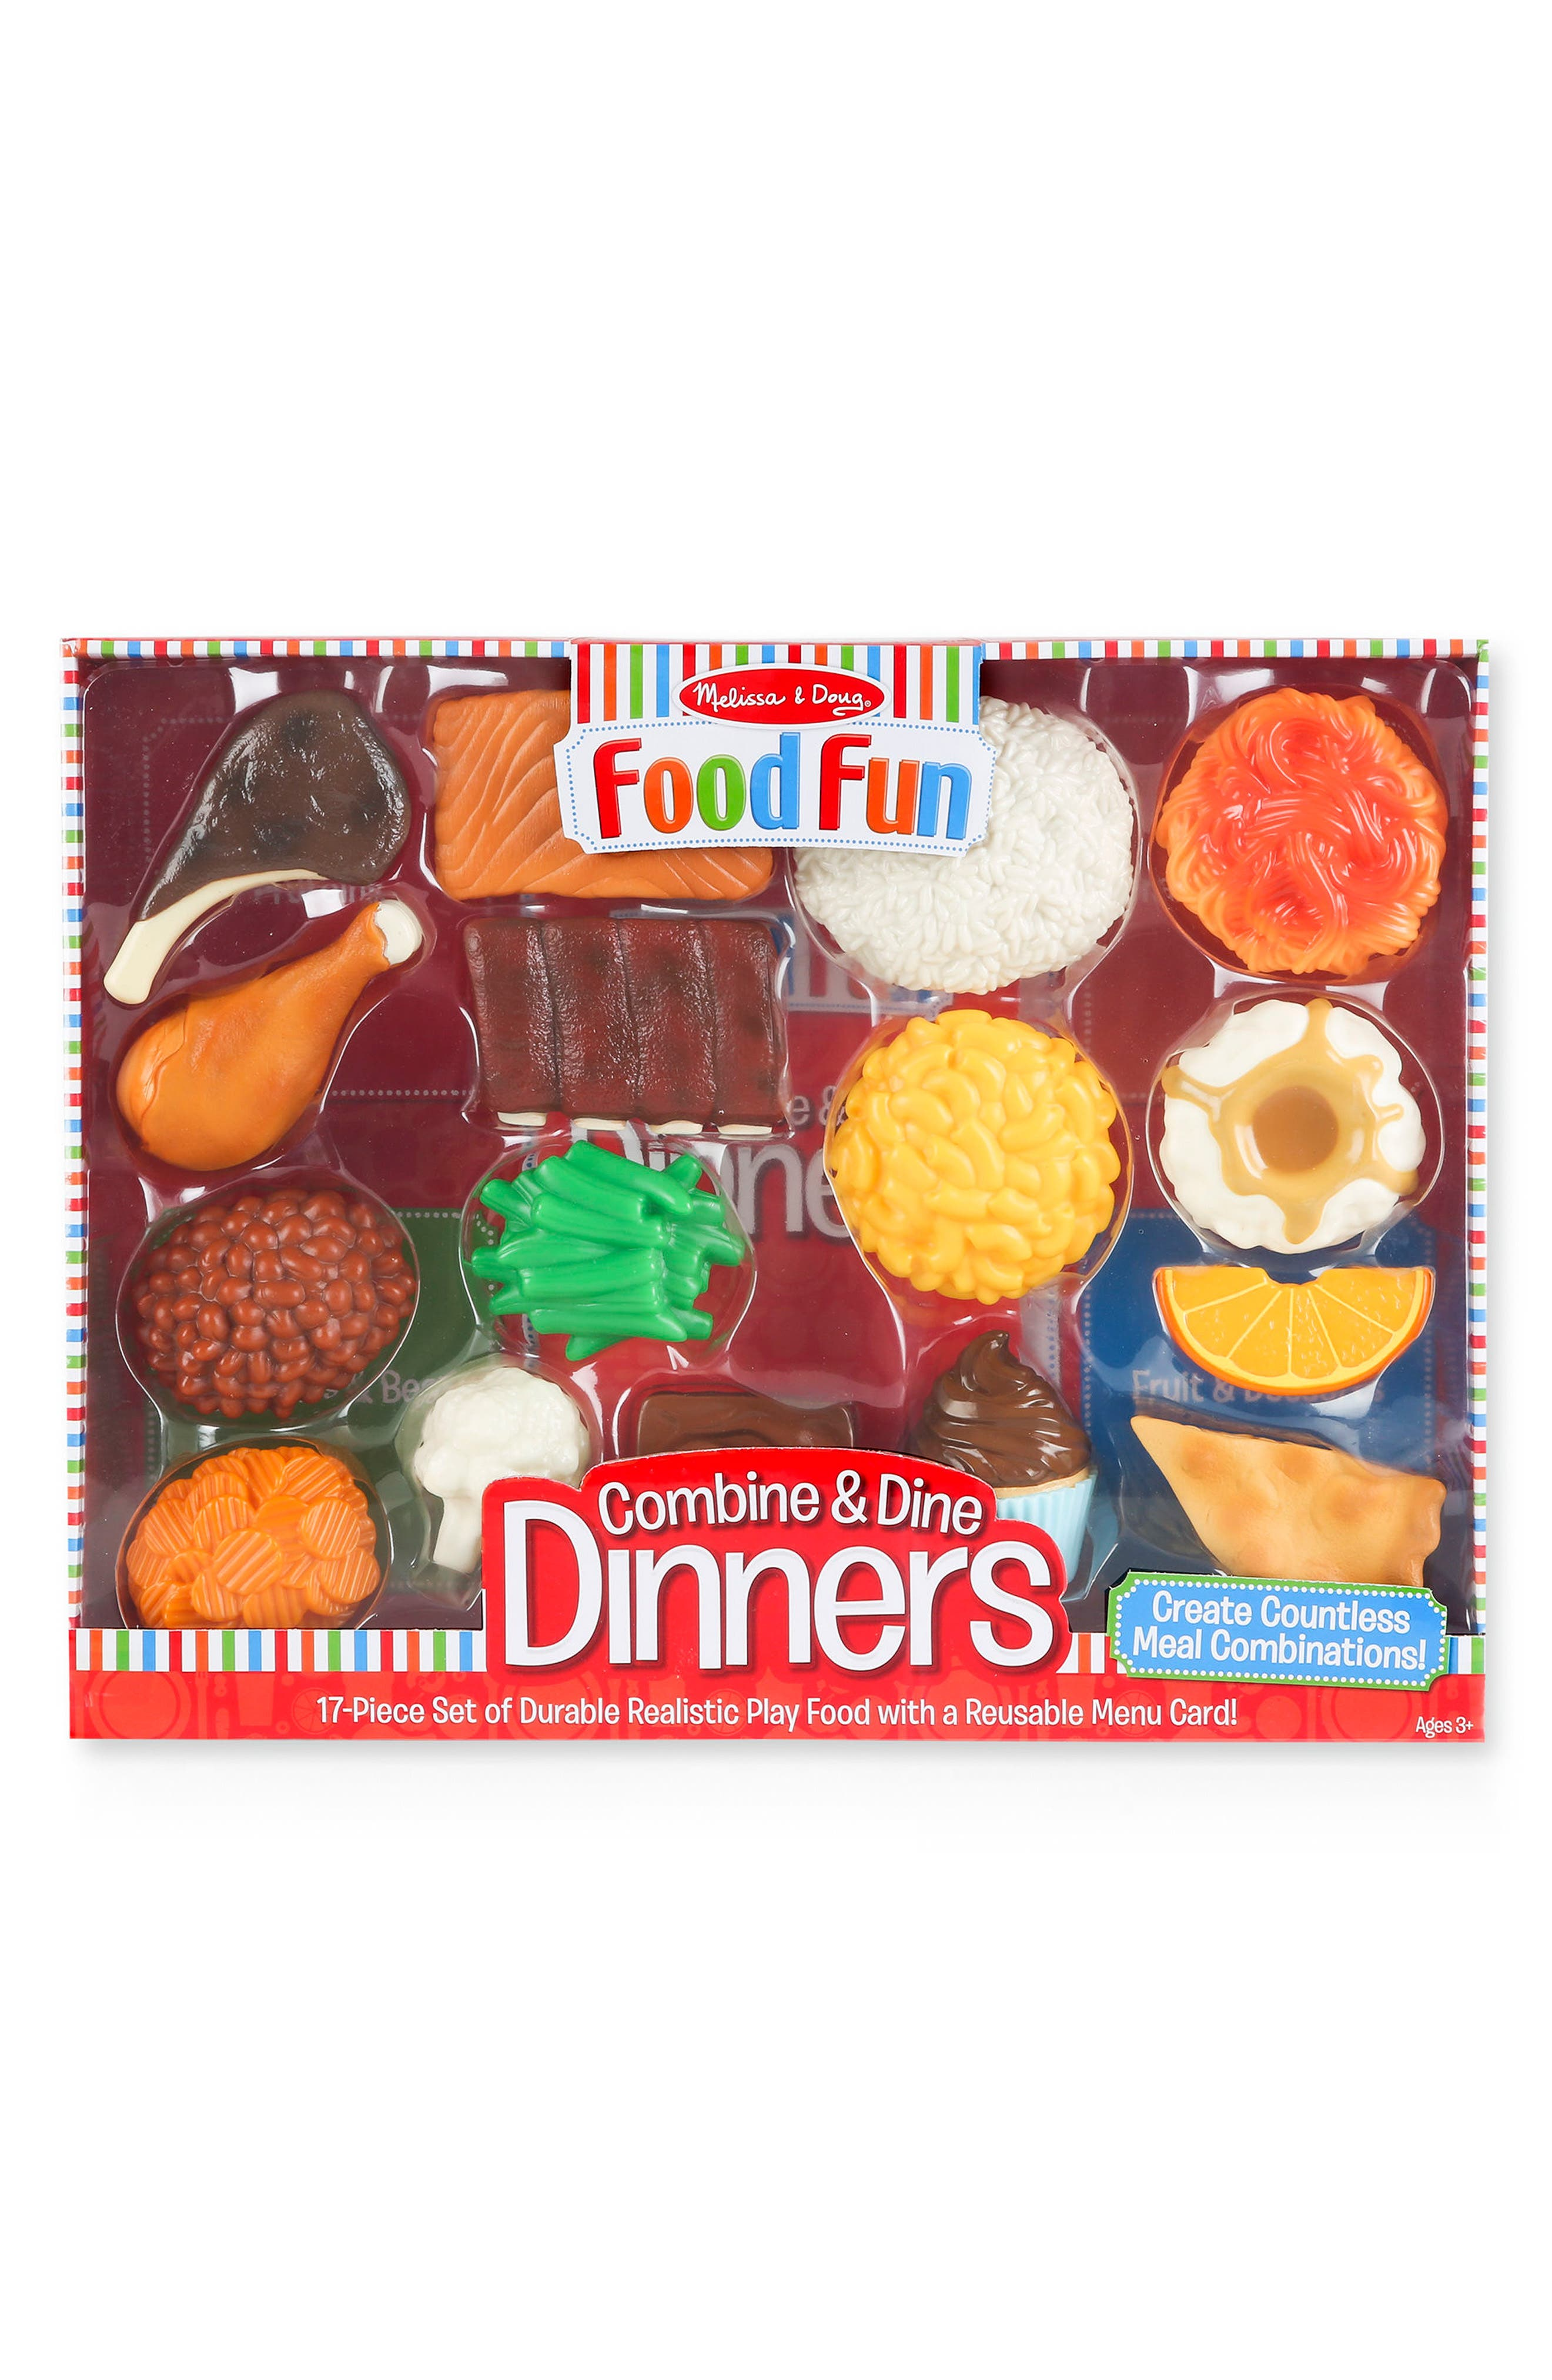 Melissa & Doug 17-Piece Combine & Dine Dinners Play Food Set